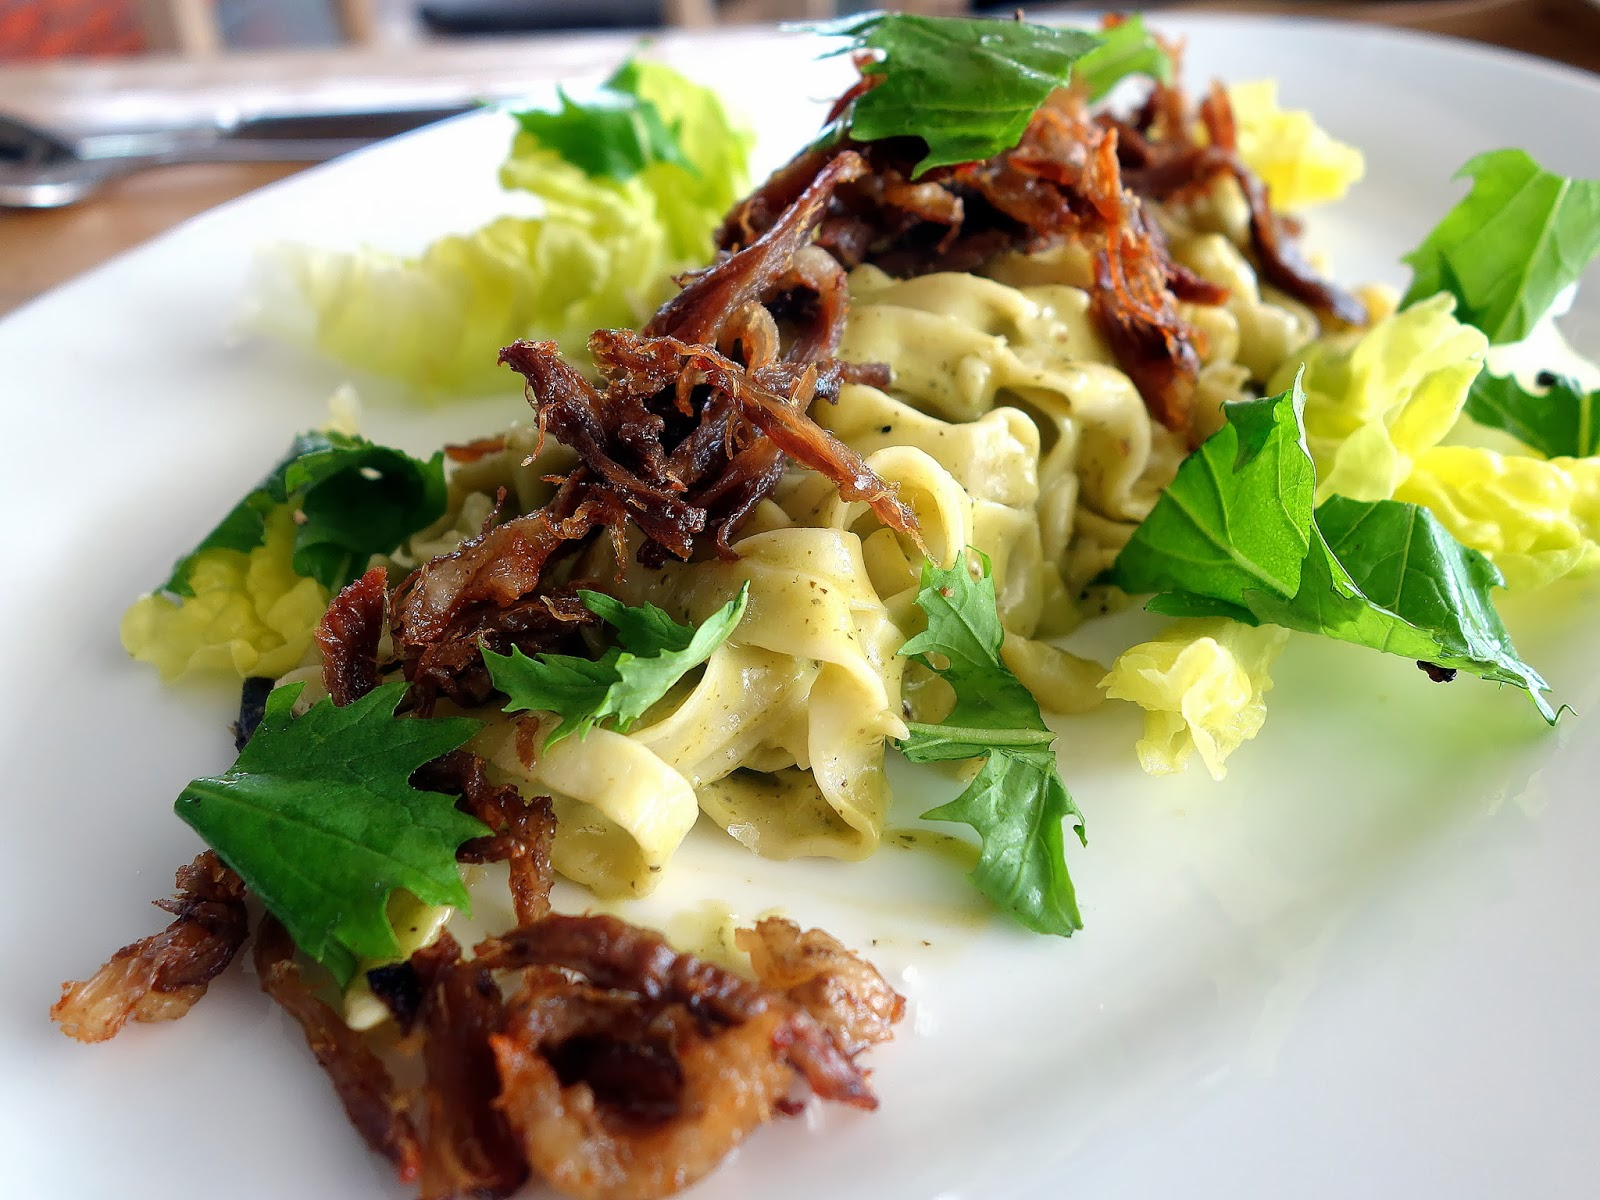 gastronomy pasta as a favourite 32 hungarian foods the whole world should know and love  meaty goodness, and is generally accompanied by a delicious side of dumplings or pasta.